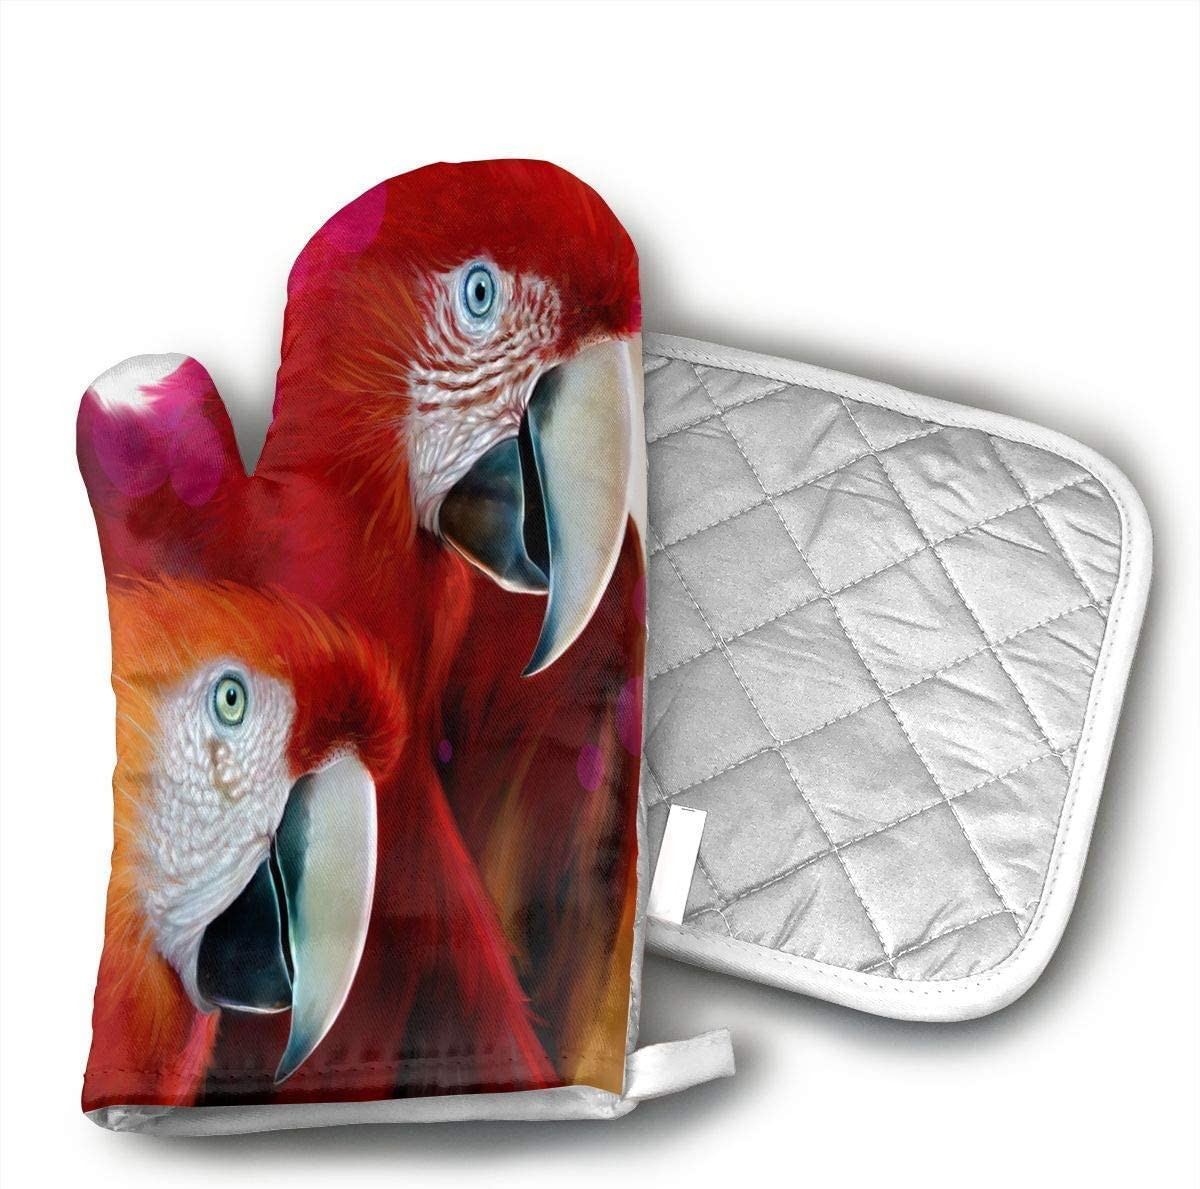 Animals Red Parrots Oven Mitts and Pot Holders Set with Polyester Cotton Non-Slip Grip, Heat Resistant, Oven Gloves for BBQ Cooking Baking, Grilling